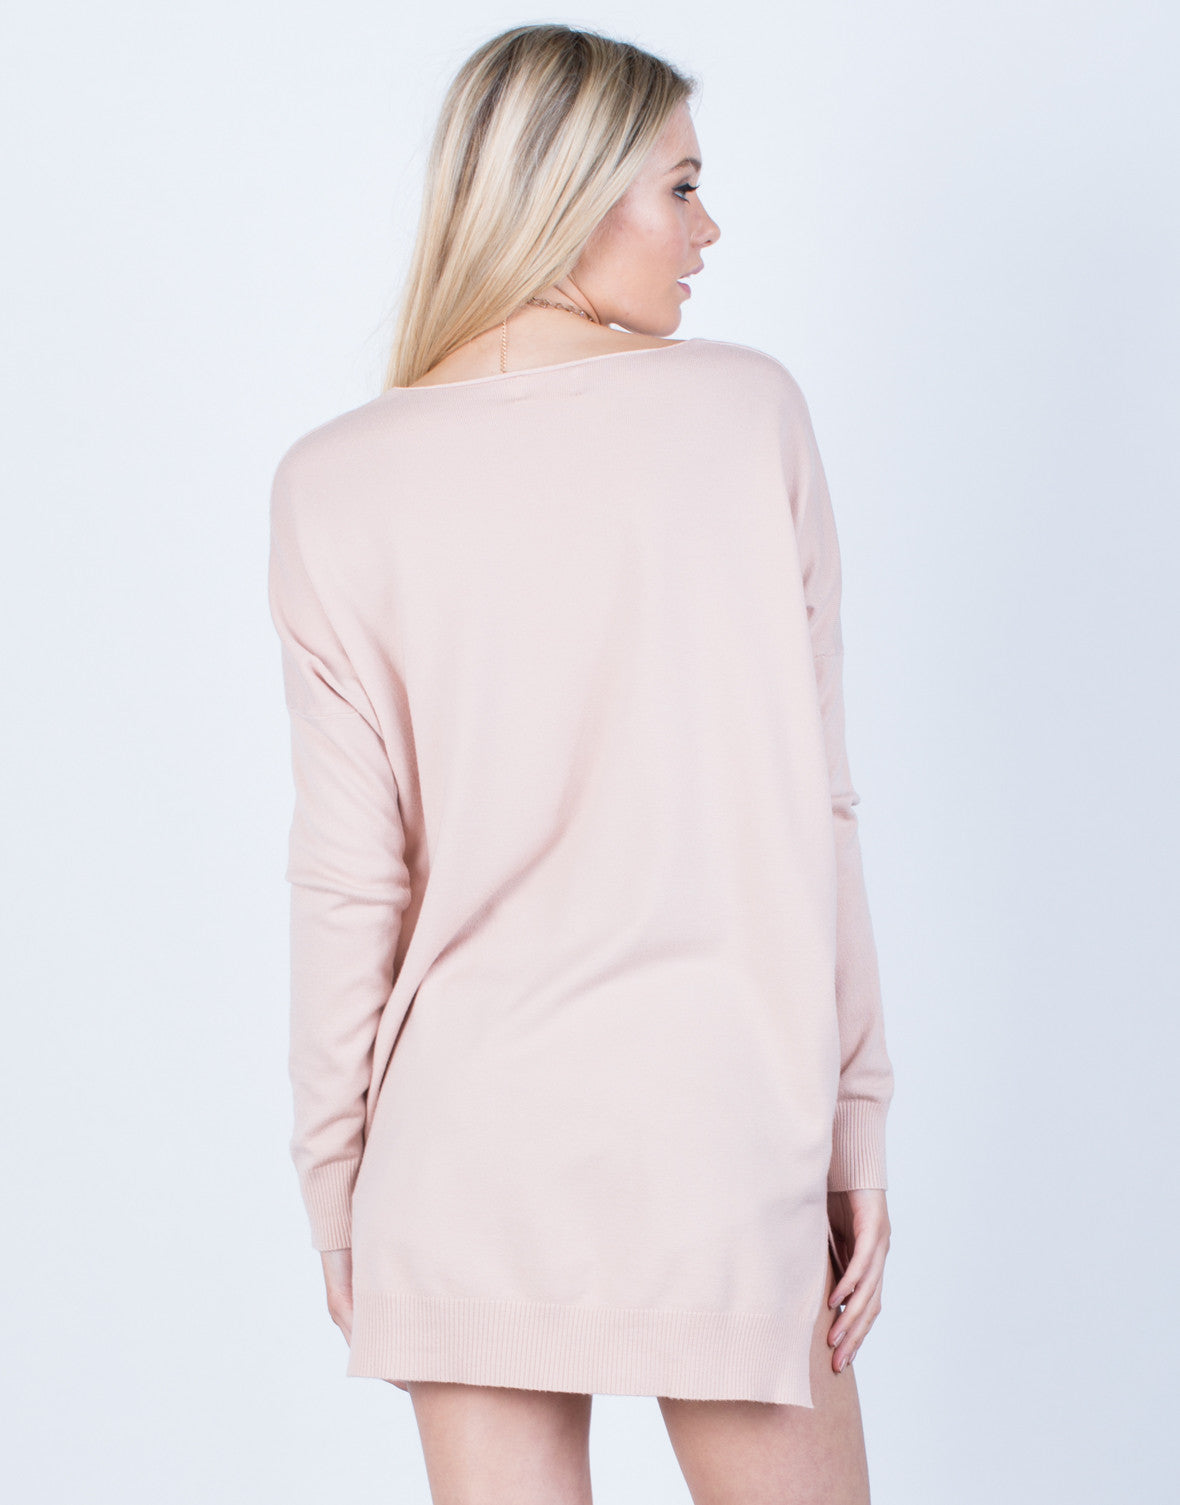 Back View of Cozy Oversized Sweater